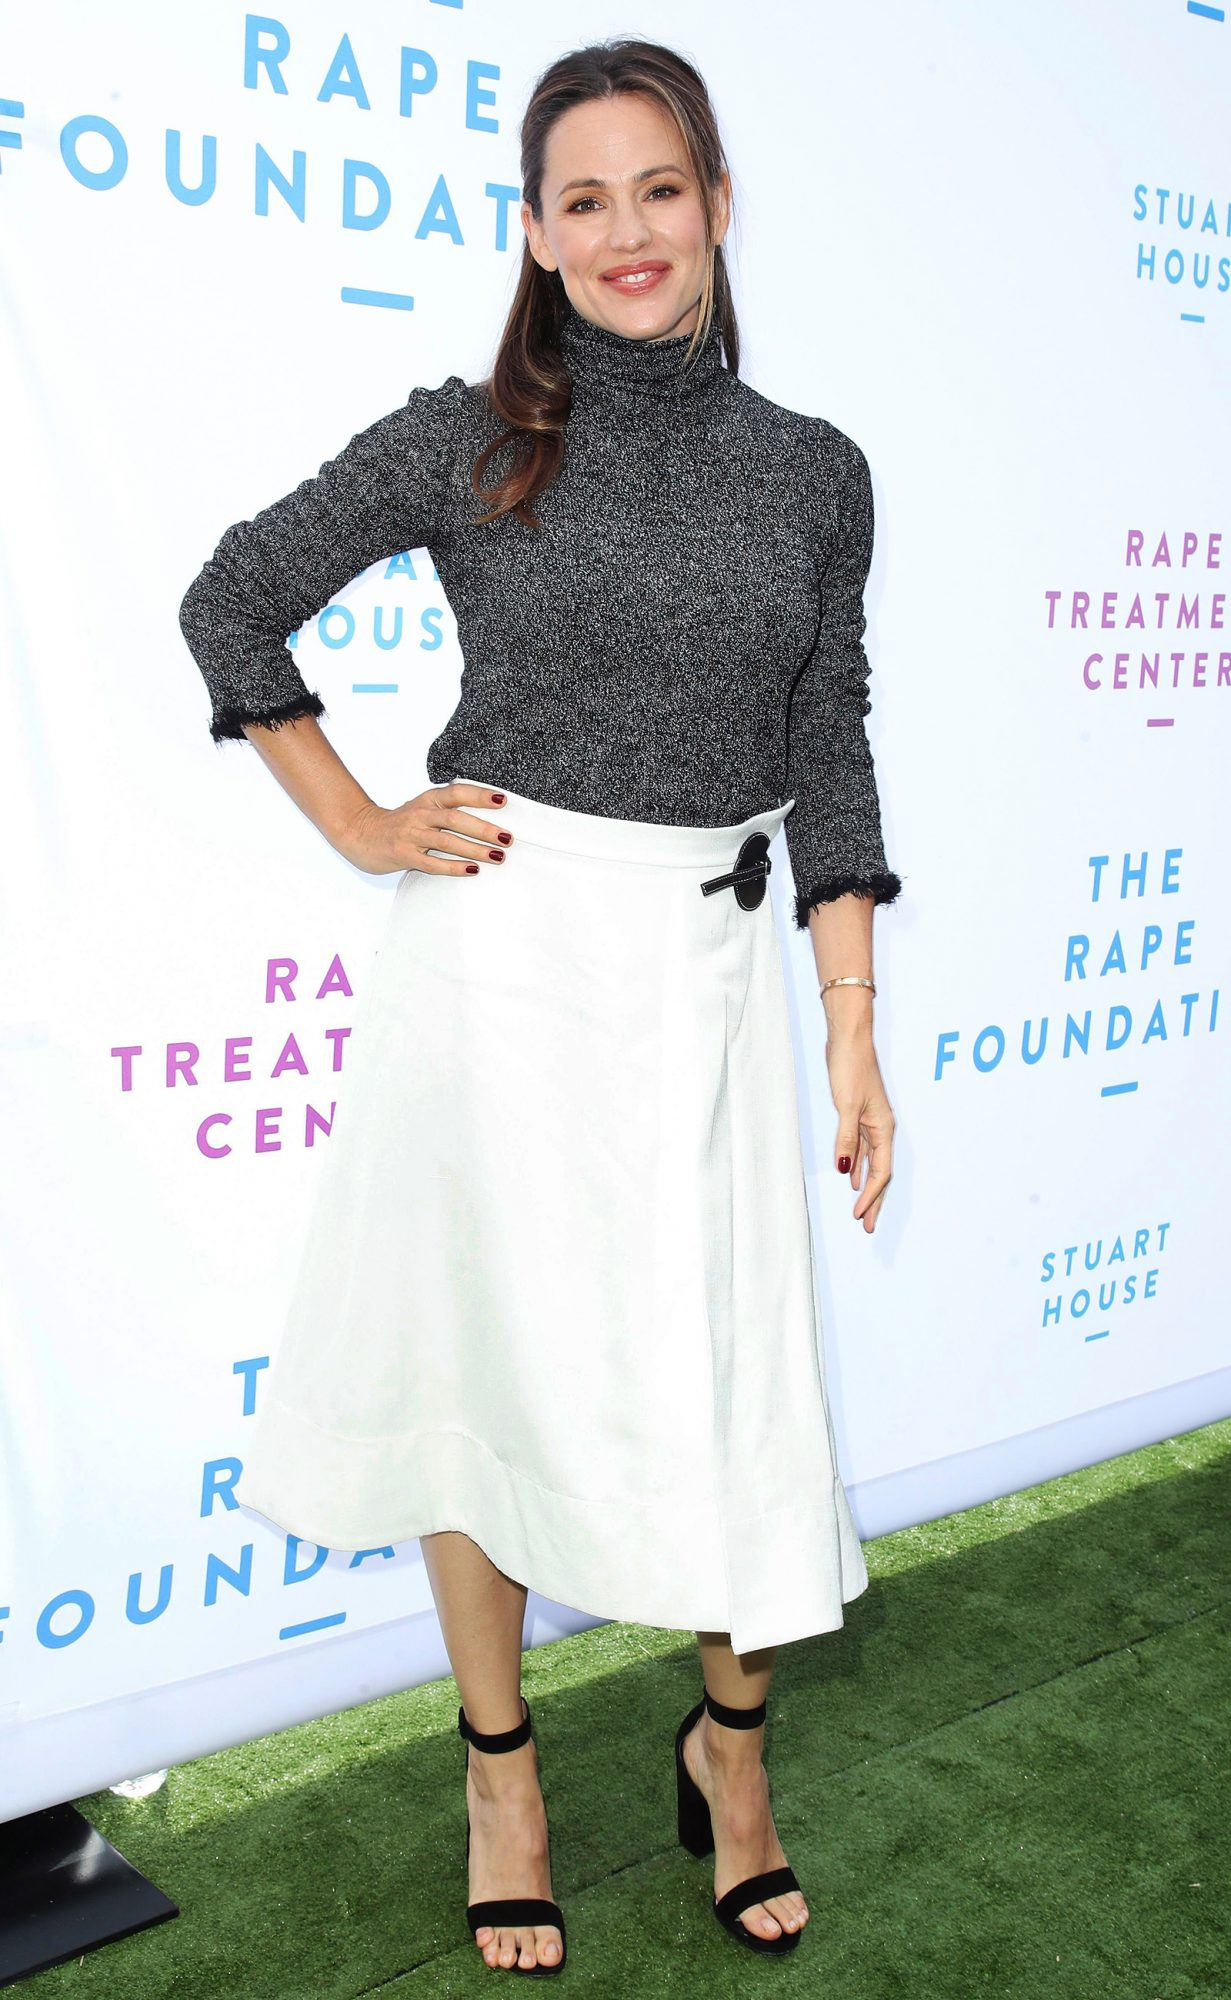 The Rape Foundation Annual Brunch, Arrivals, Los Angeles, USA - 07 Oct 2018